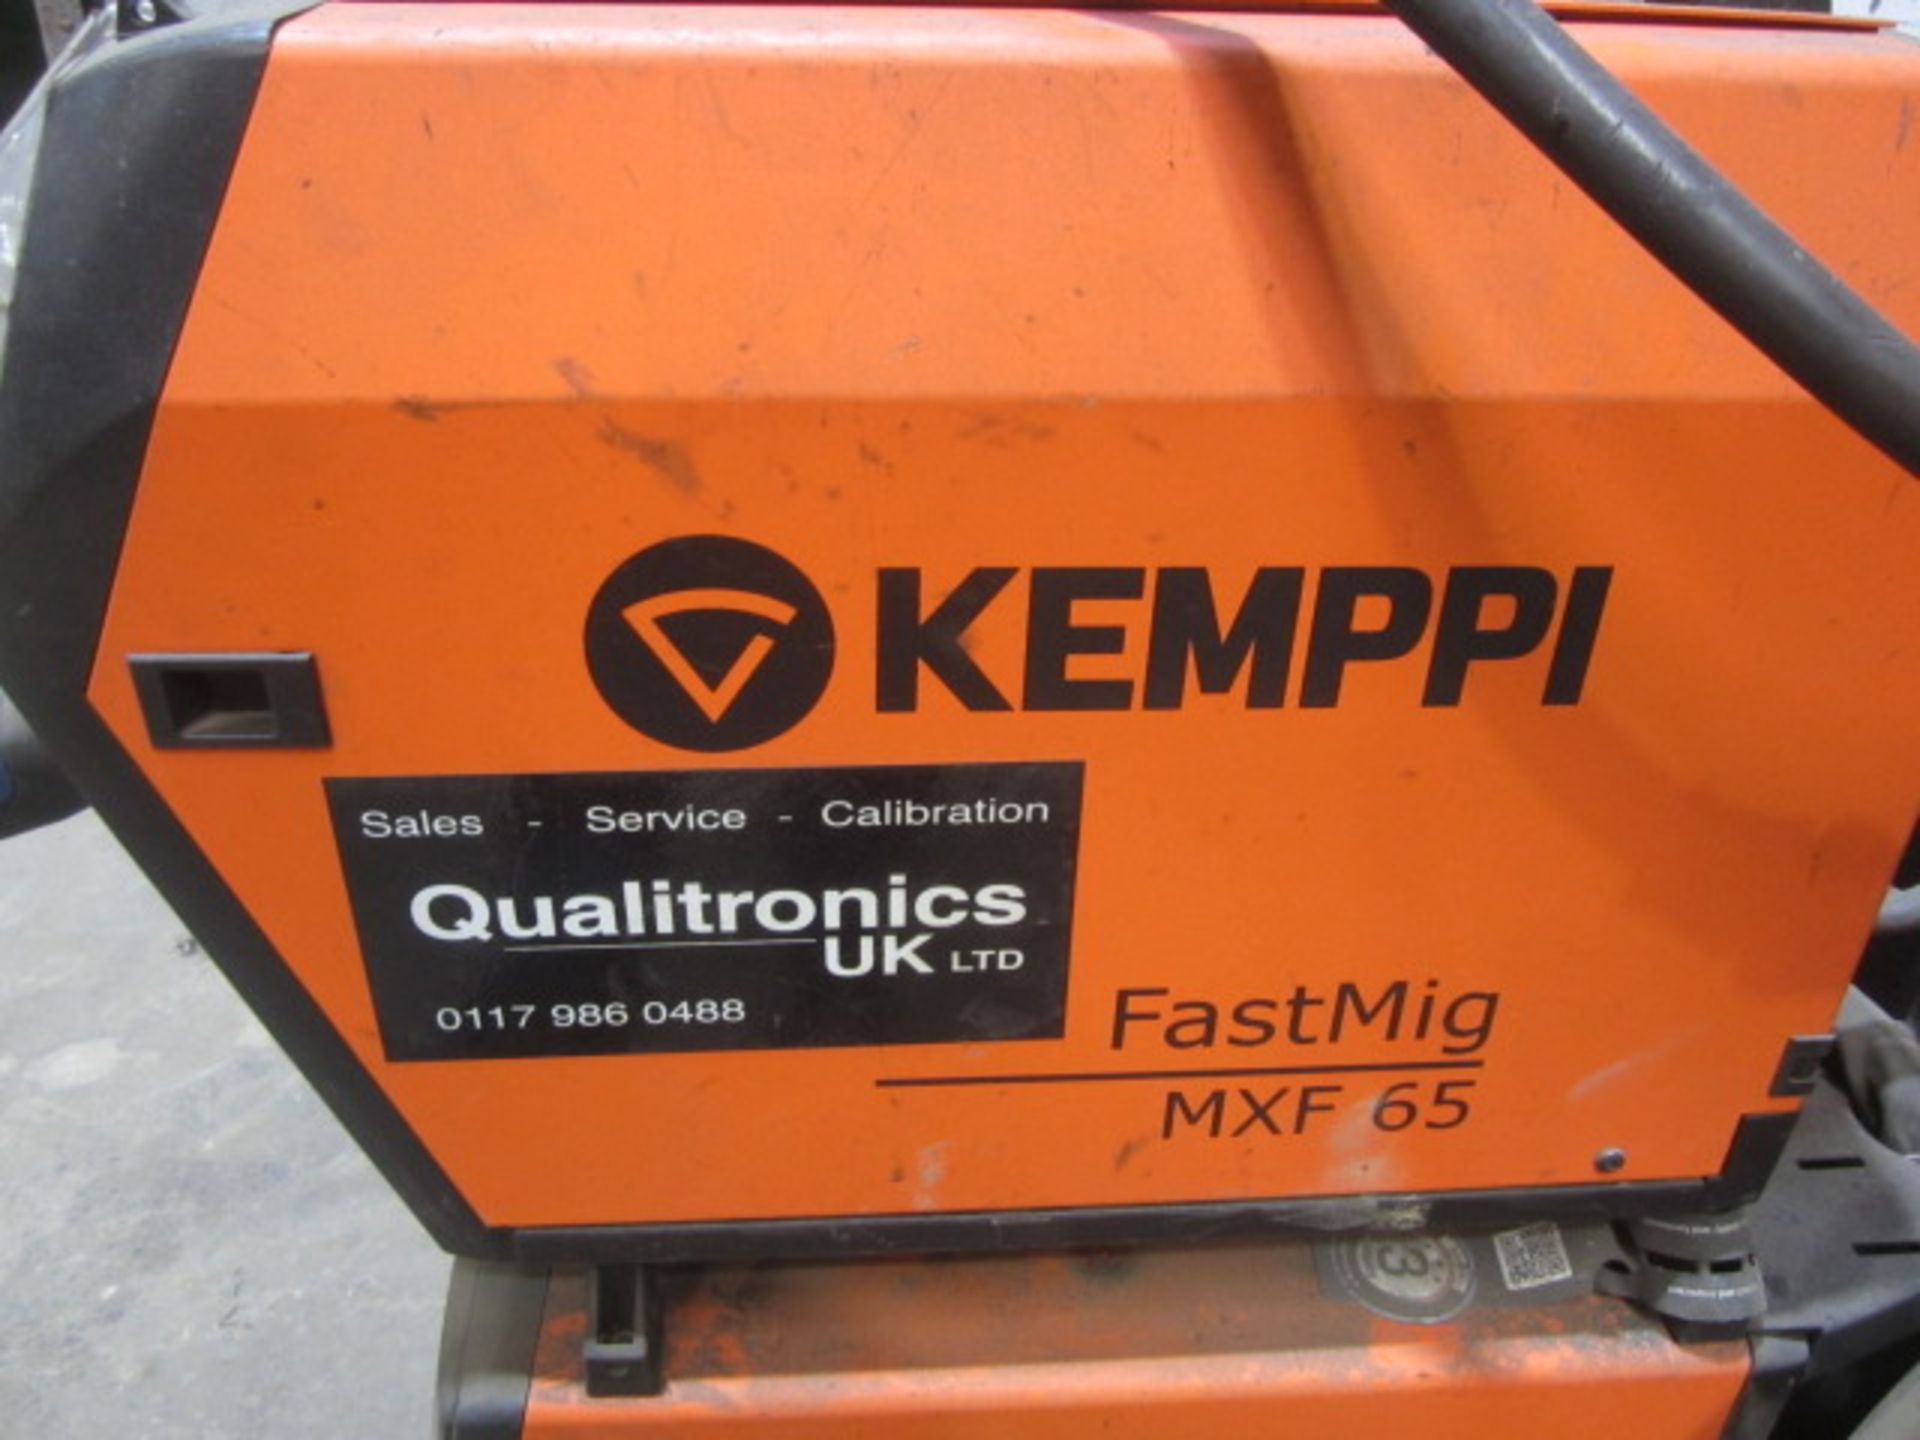 Kemppi Fast Mig M420 mig welder, serial no. 2694679, with Fast Mig MXF65 wire feeder, serial no. - Image 4 of 7